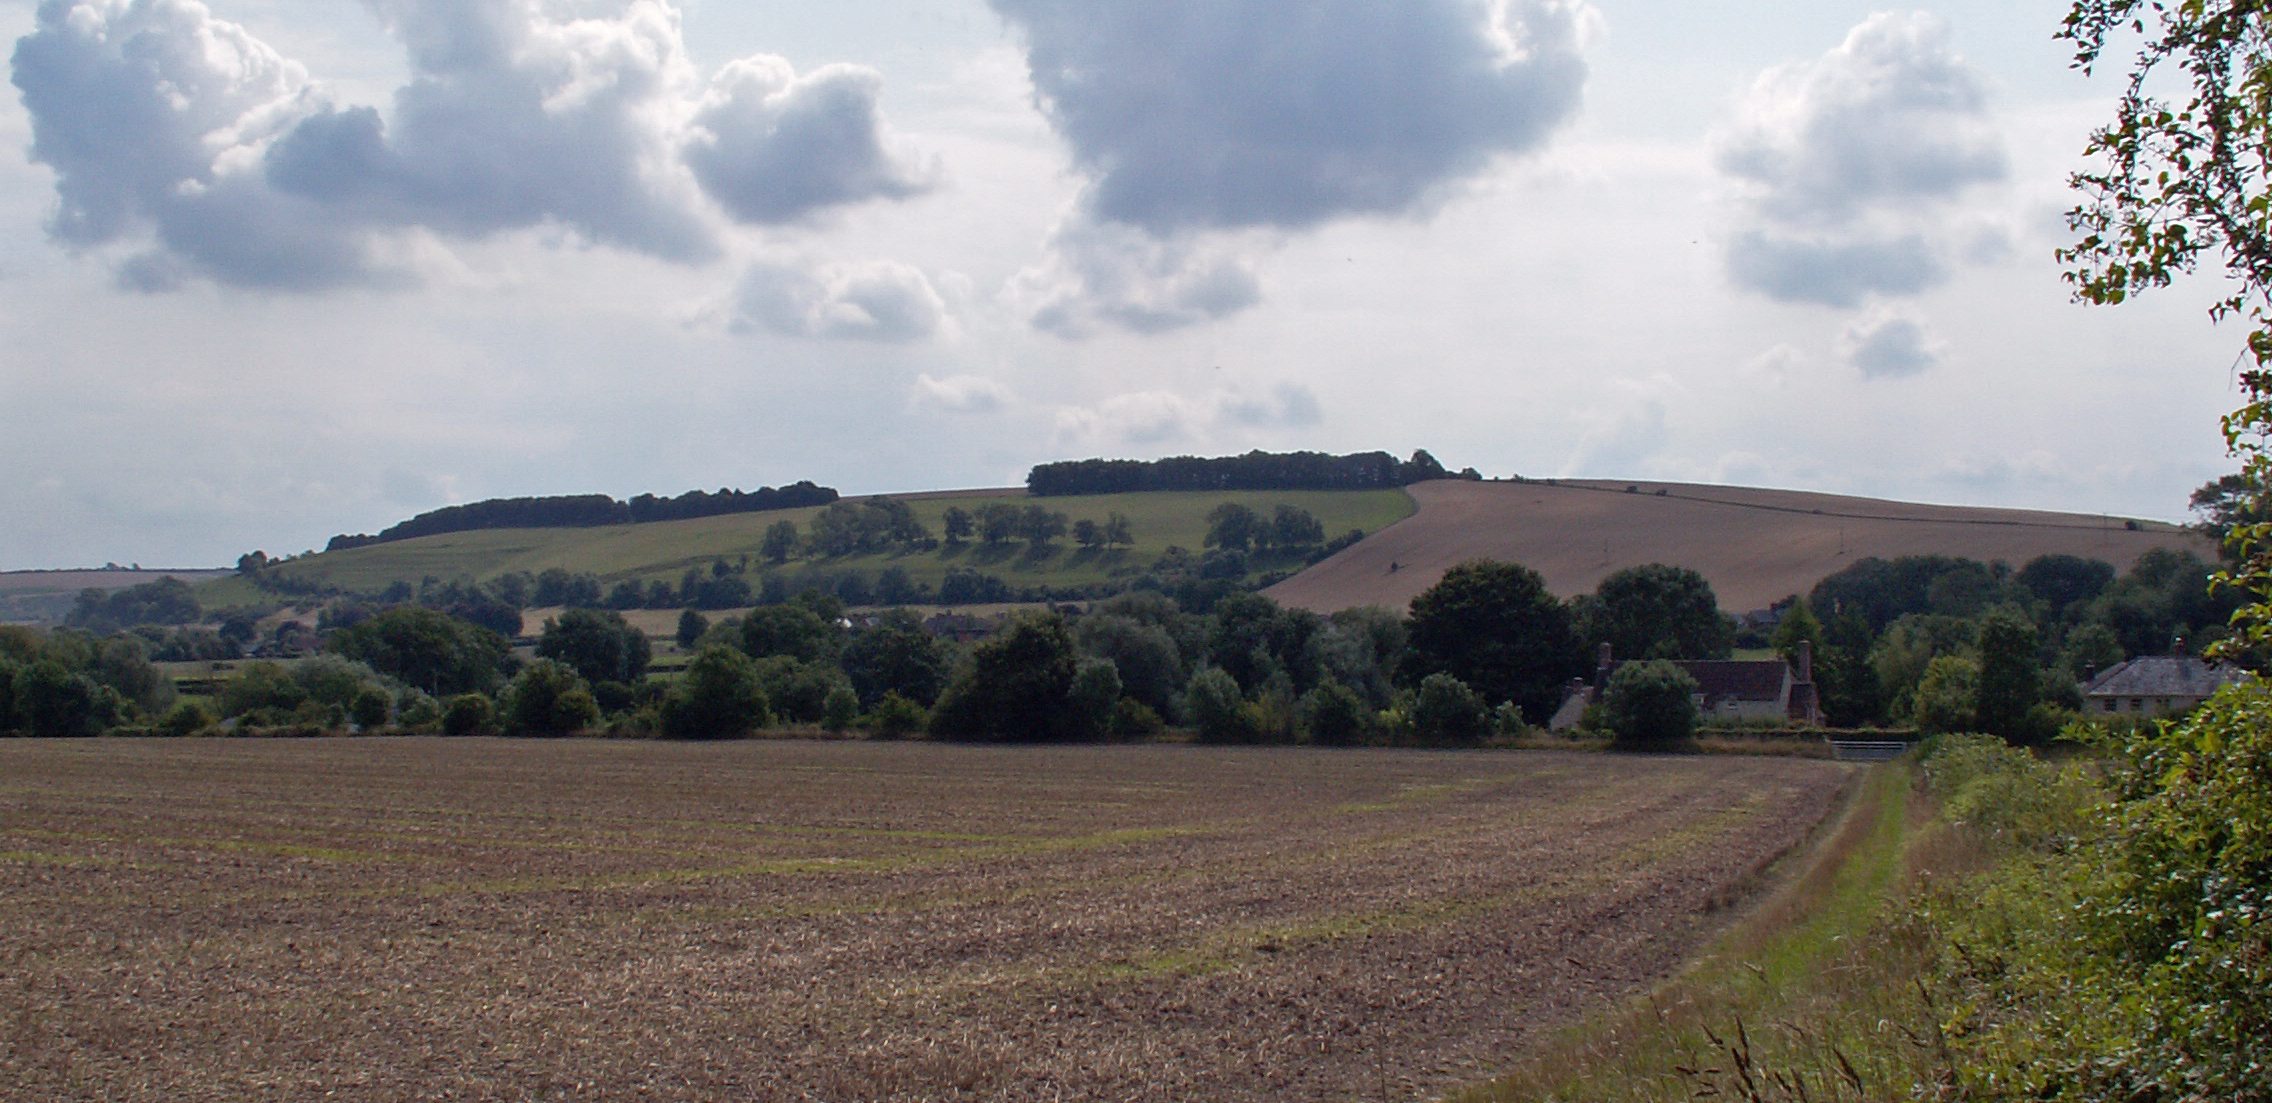 04 Chalke Valley.jpg - KONICA MINOLTA DIGITAL CAMERA